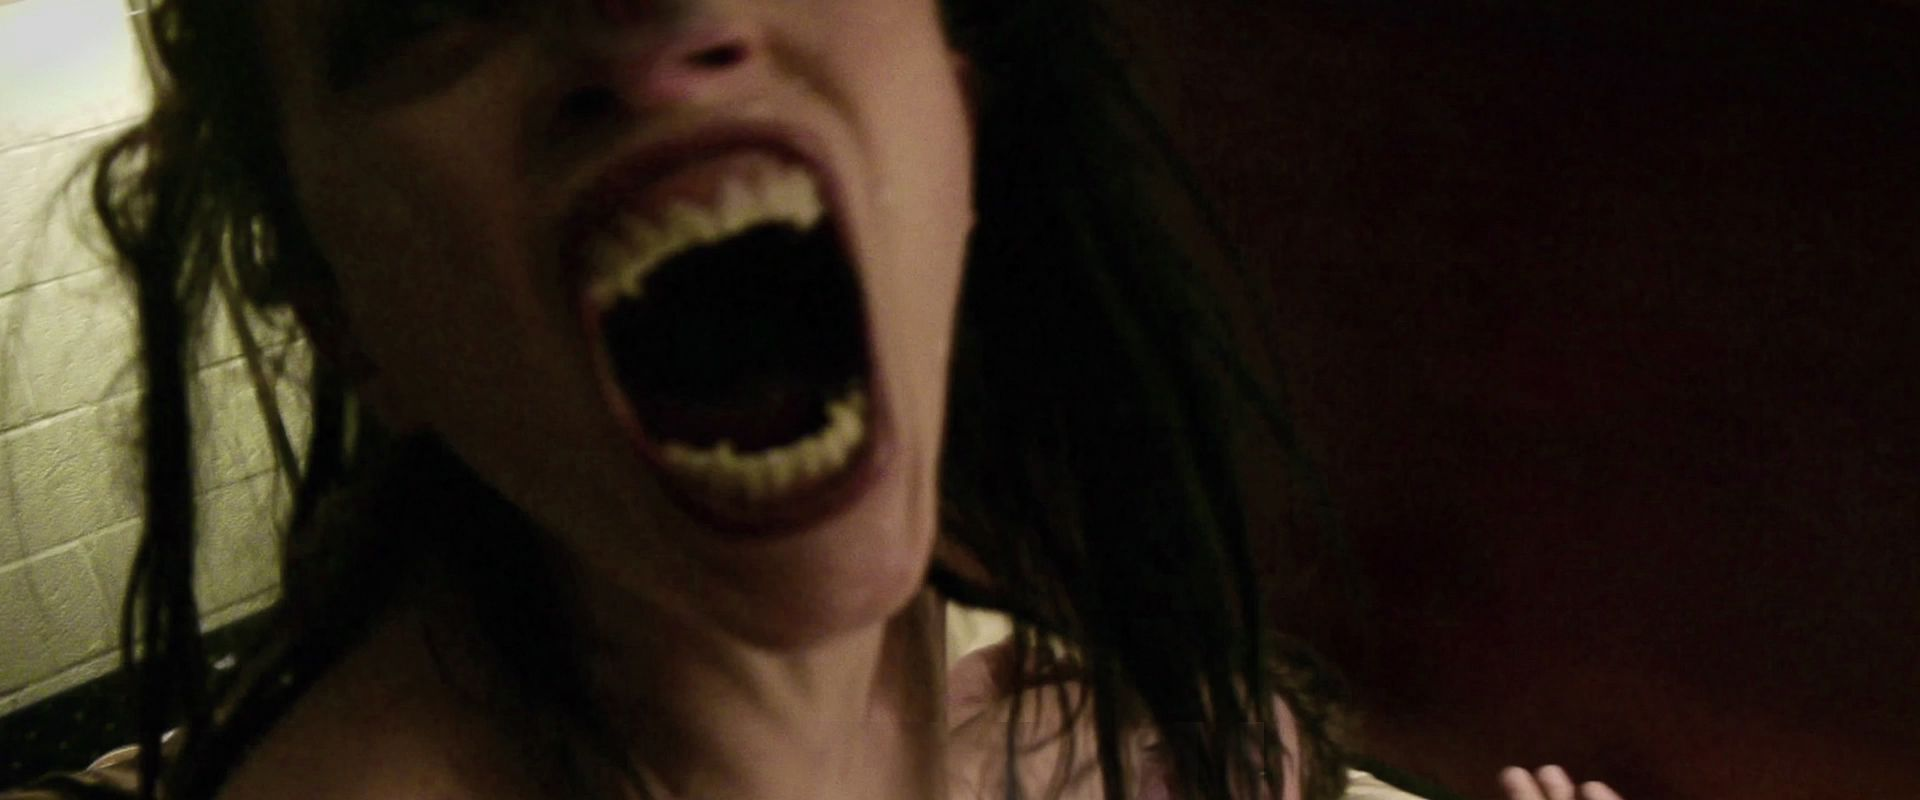 An image from V/H/S